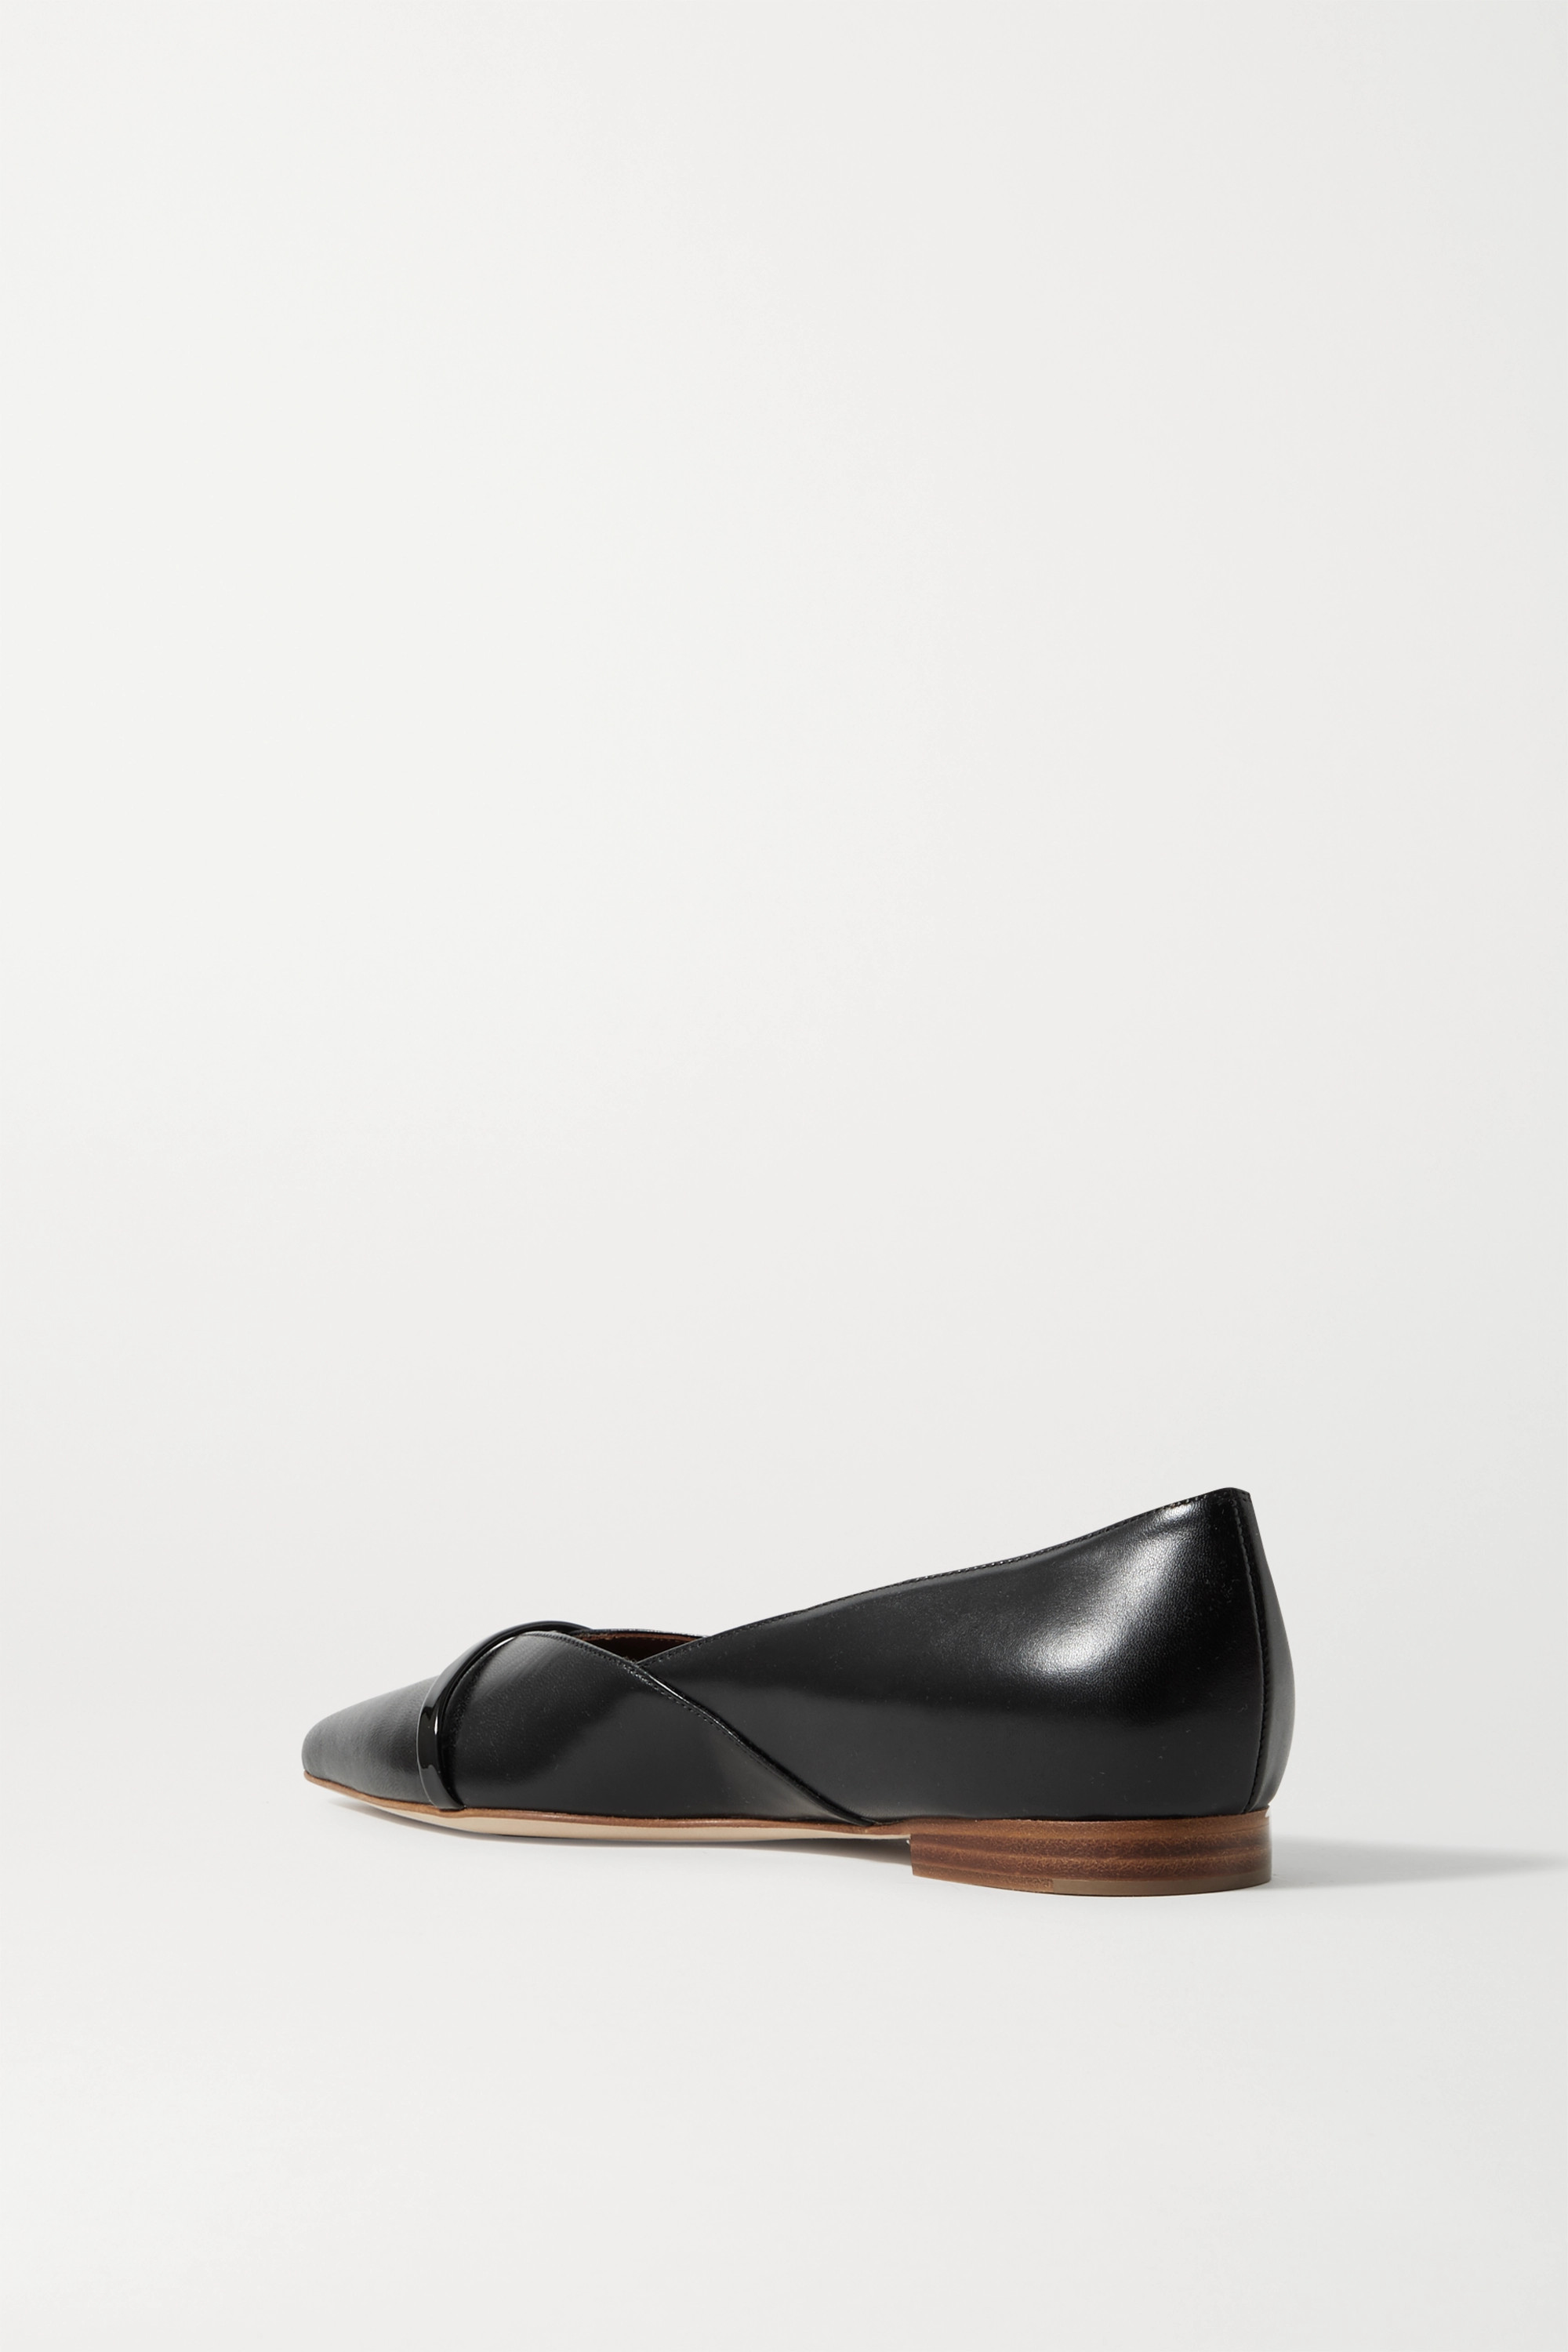 Black Colette Patent-trimmed Leather Point-toe Flats | Malone Souliers